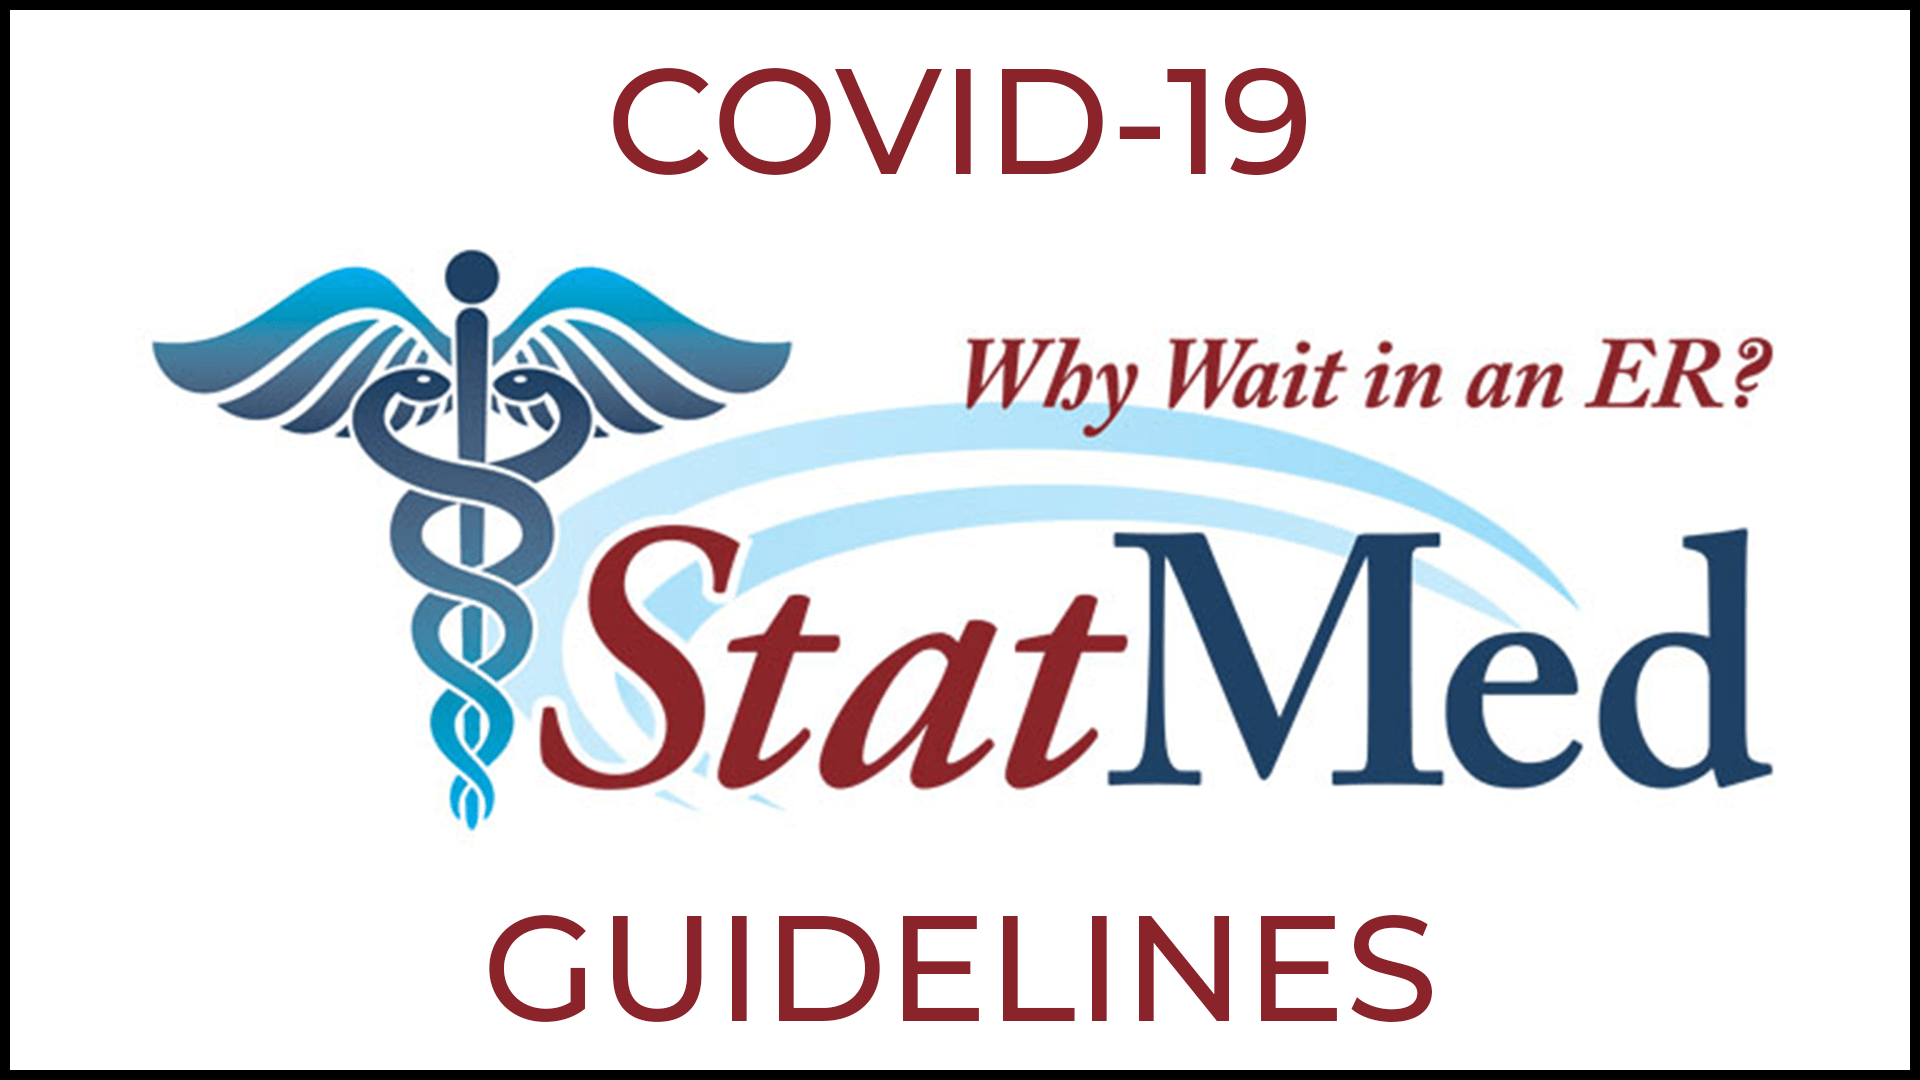 StatMed COVID-19 Guidelines